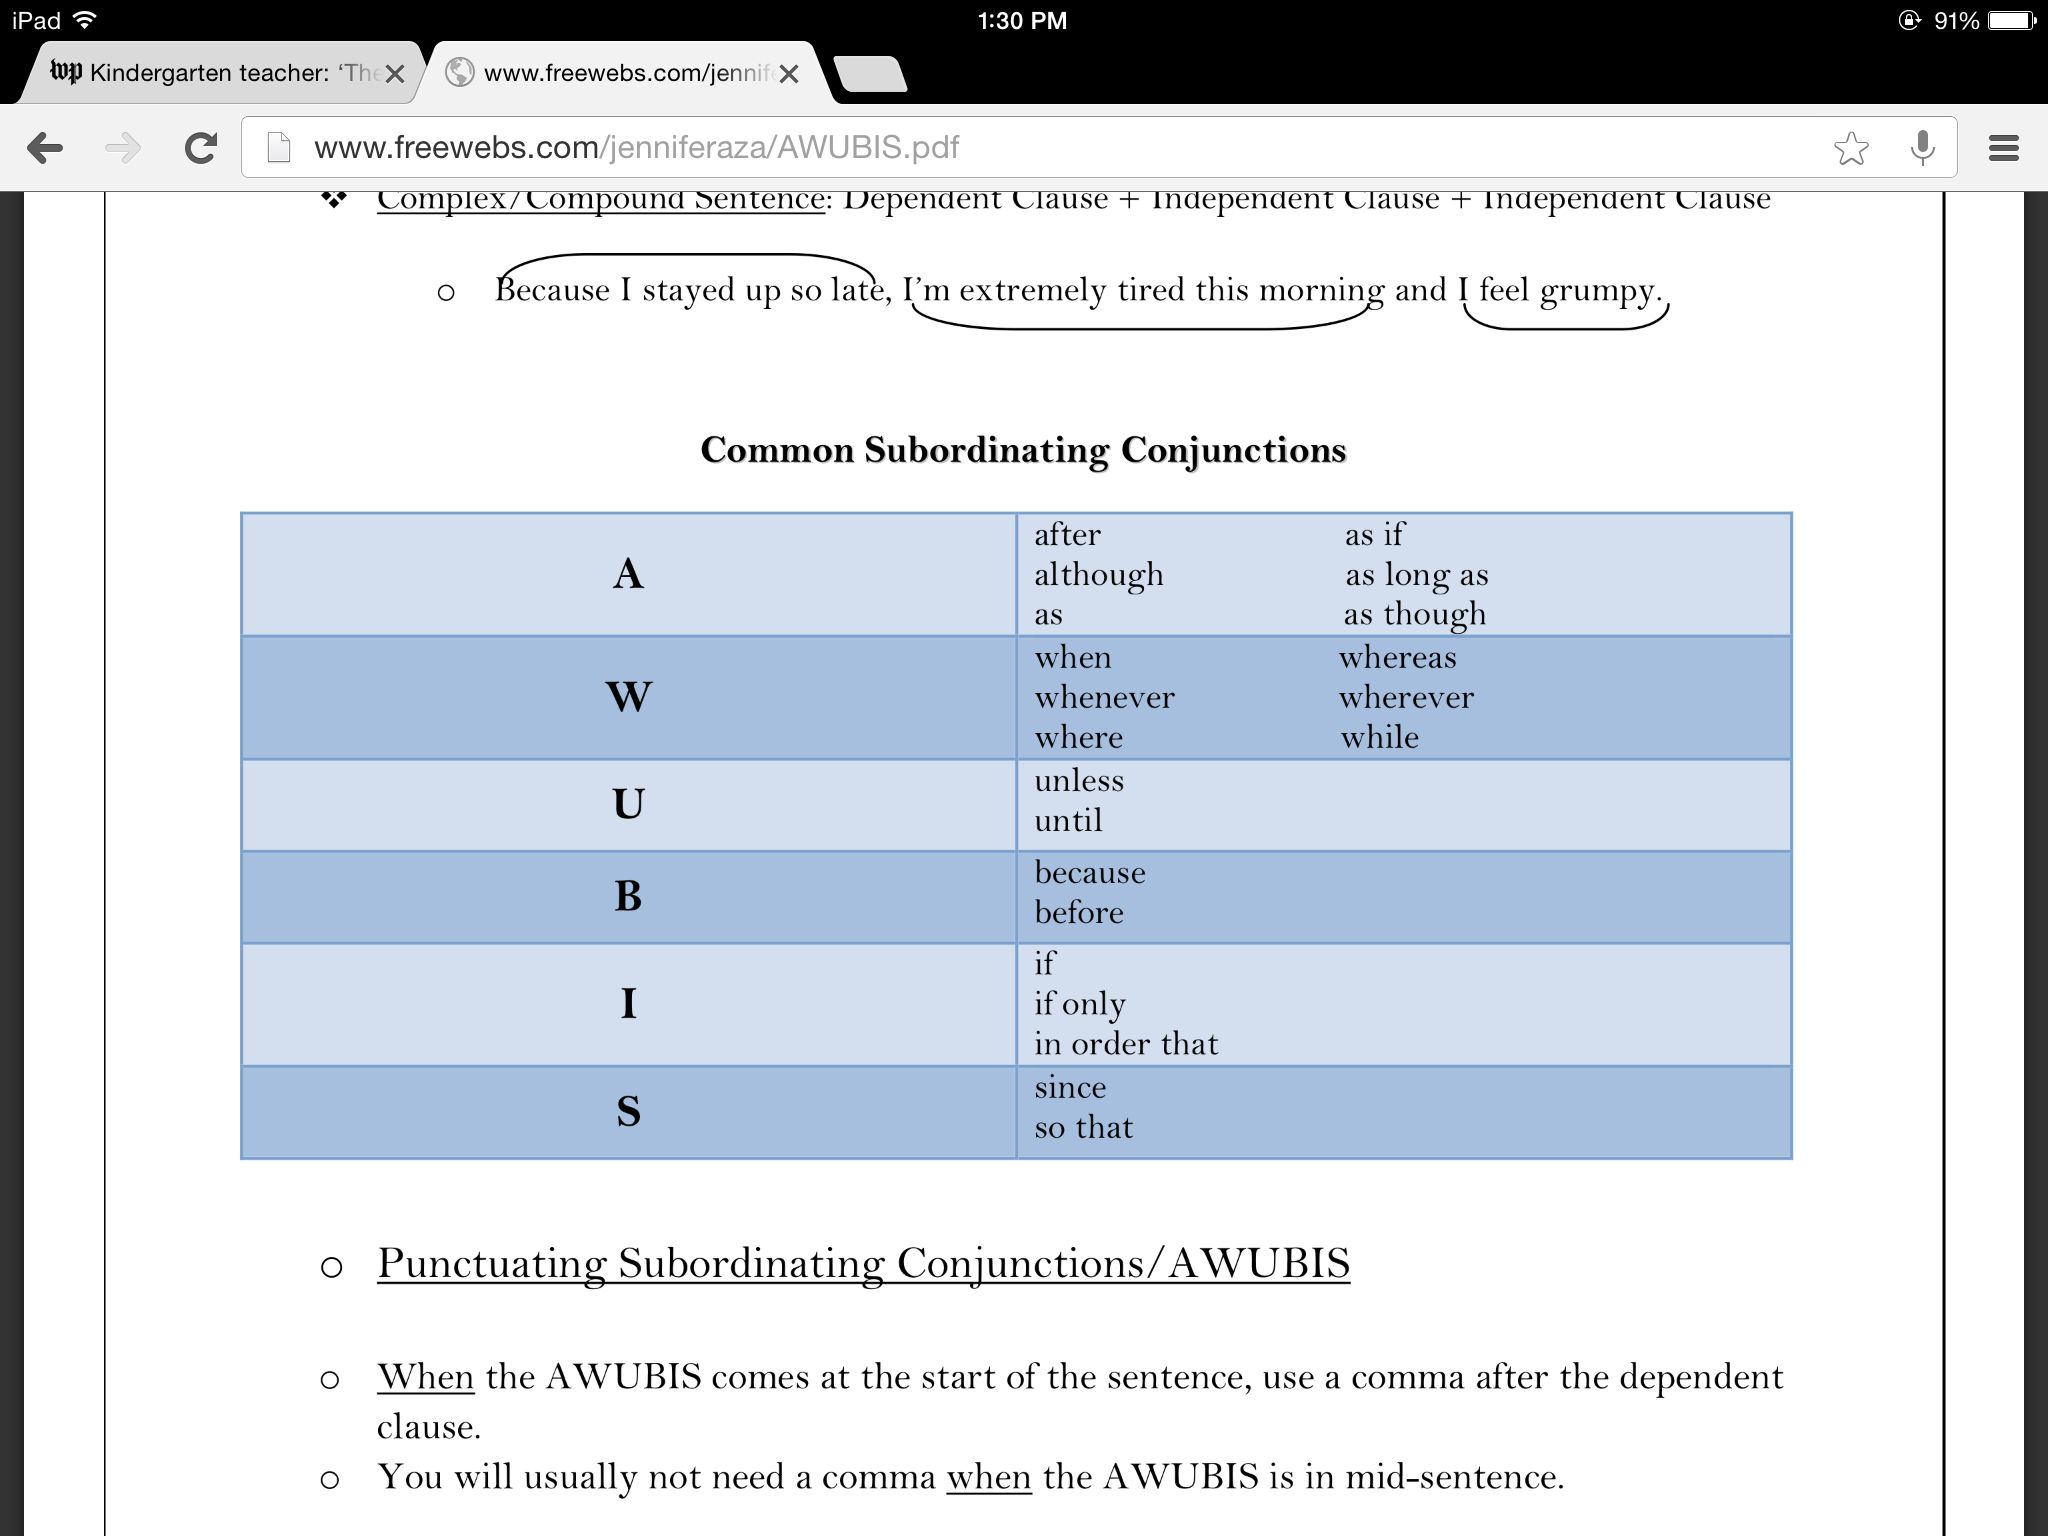 Awubis Coordinating Conjunctions